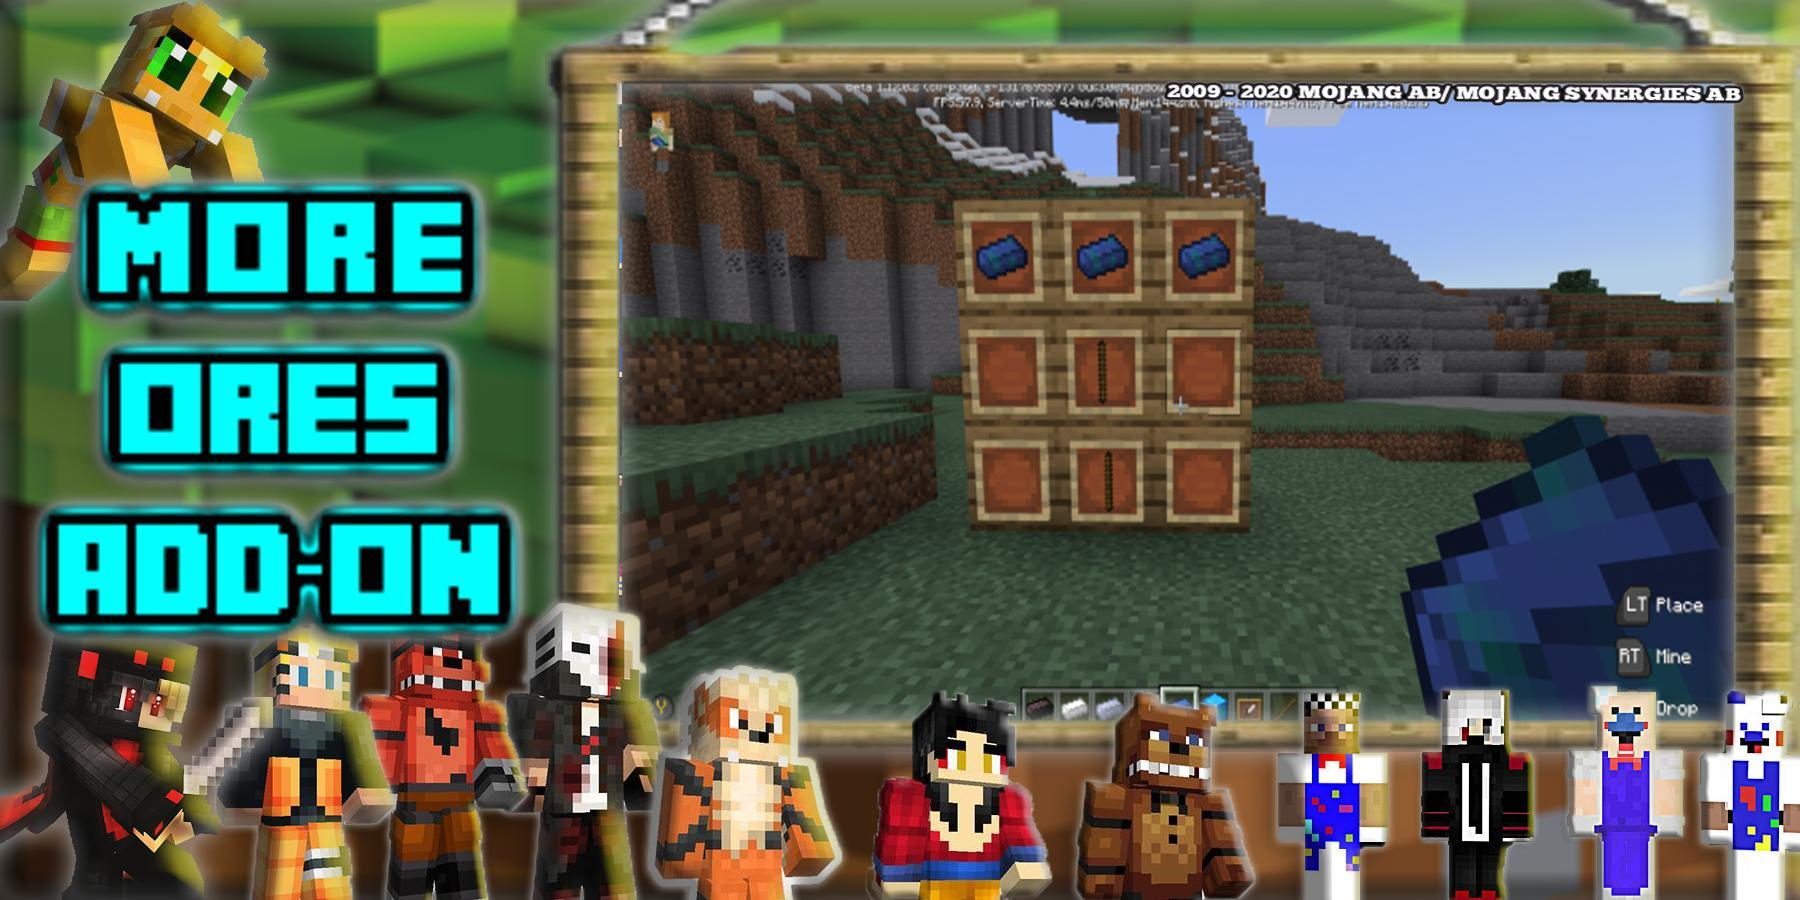 New Skins For MCPE: Casual Skins & Mods For Craft for Android - APK Download